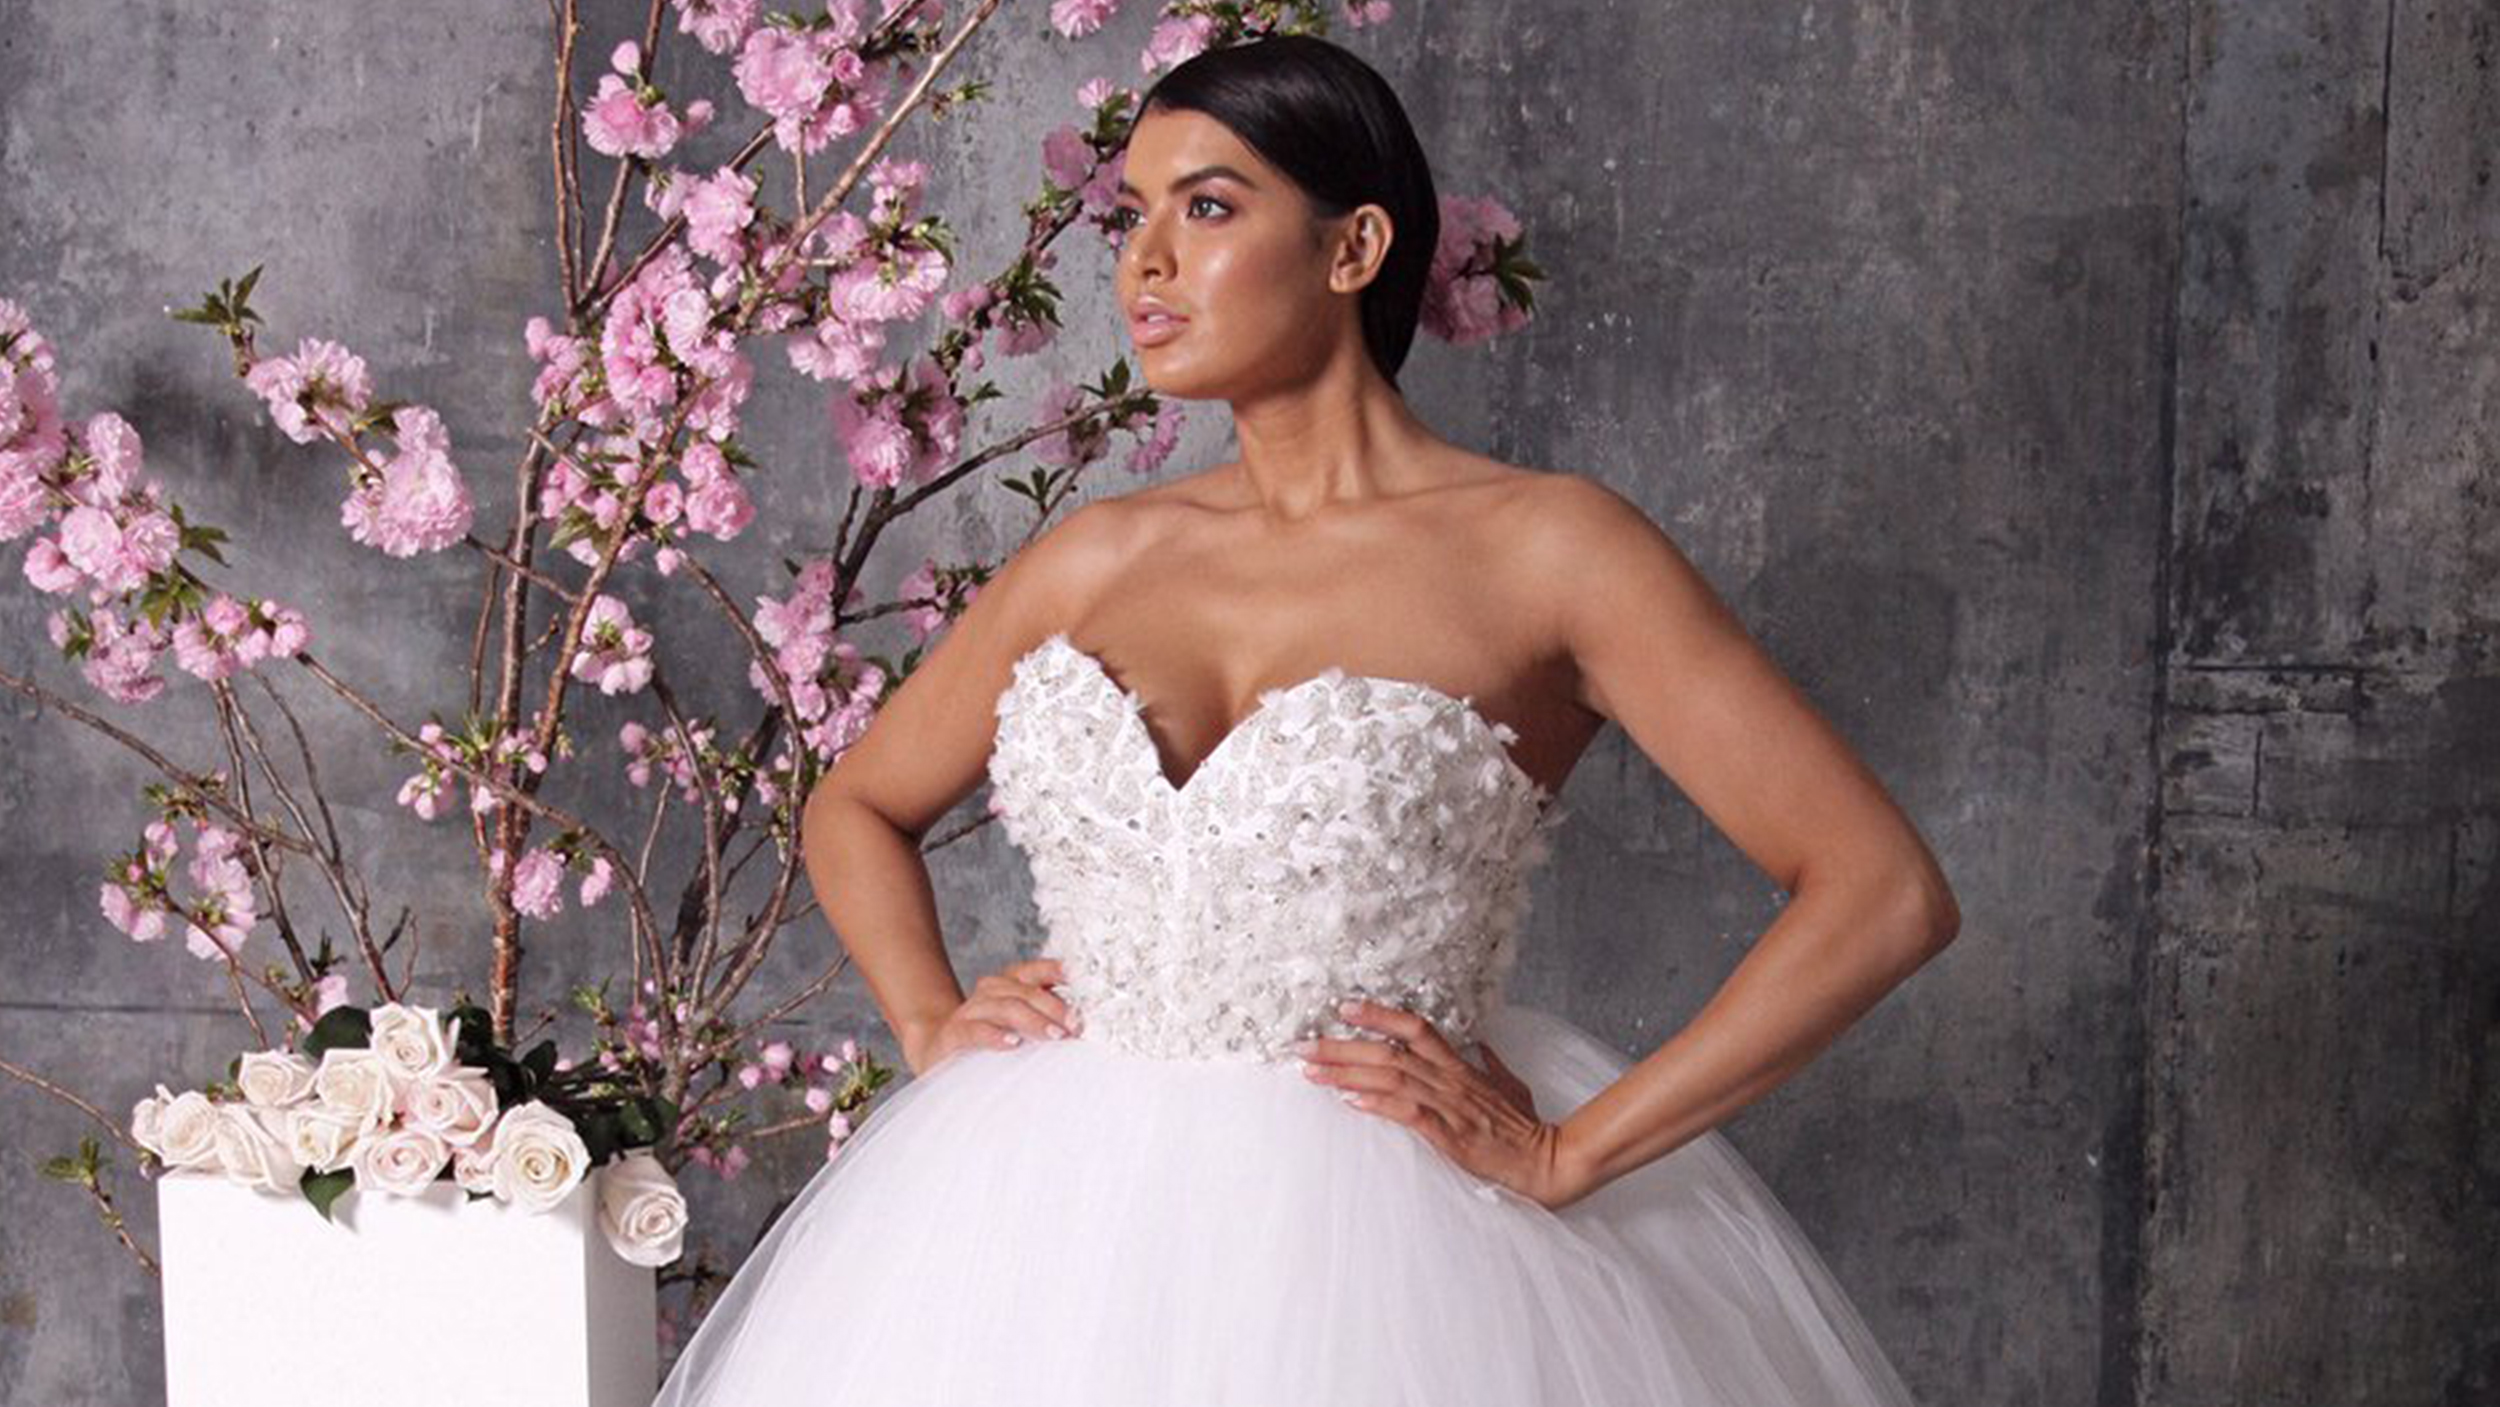 Weddings dresses rings and inspiration today christian siriano ombrellifo Image collections